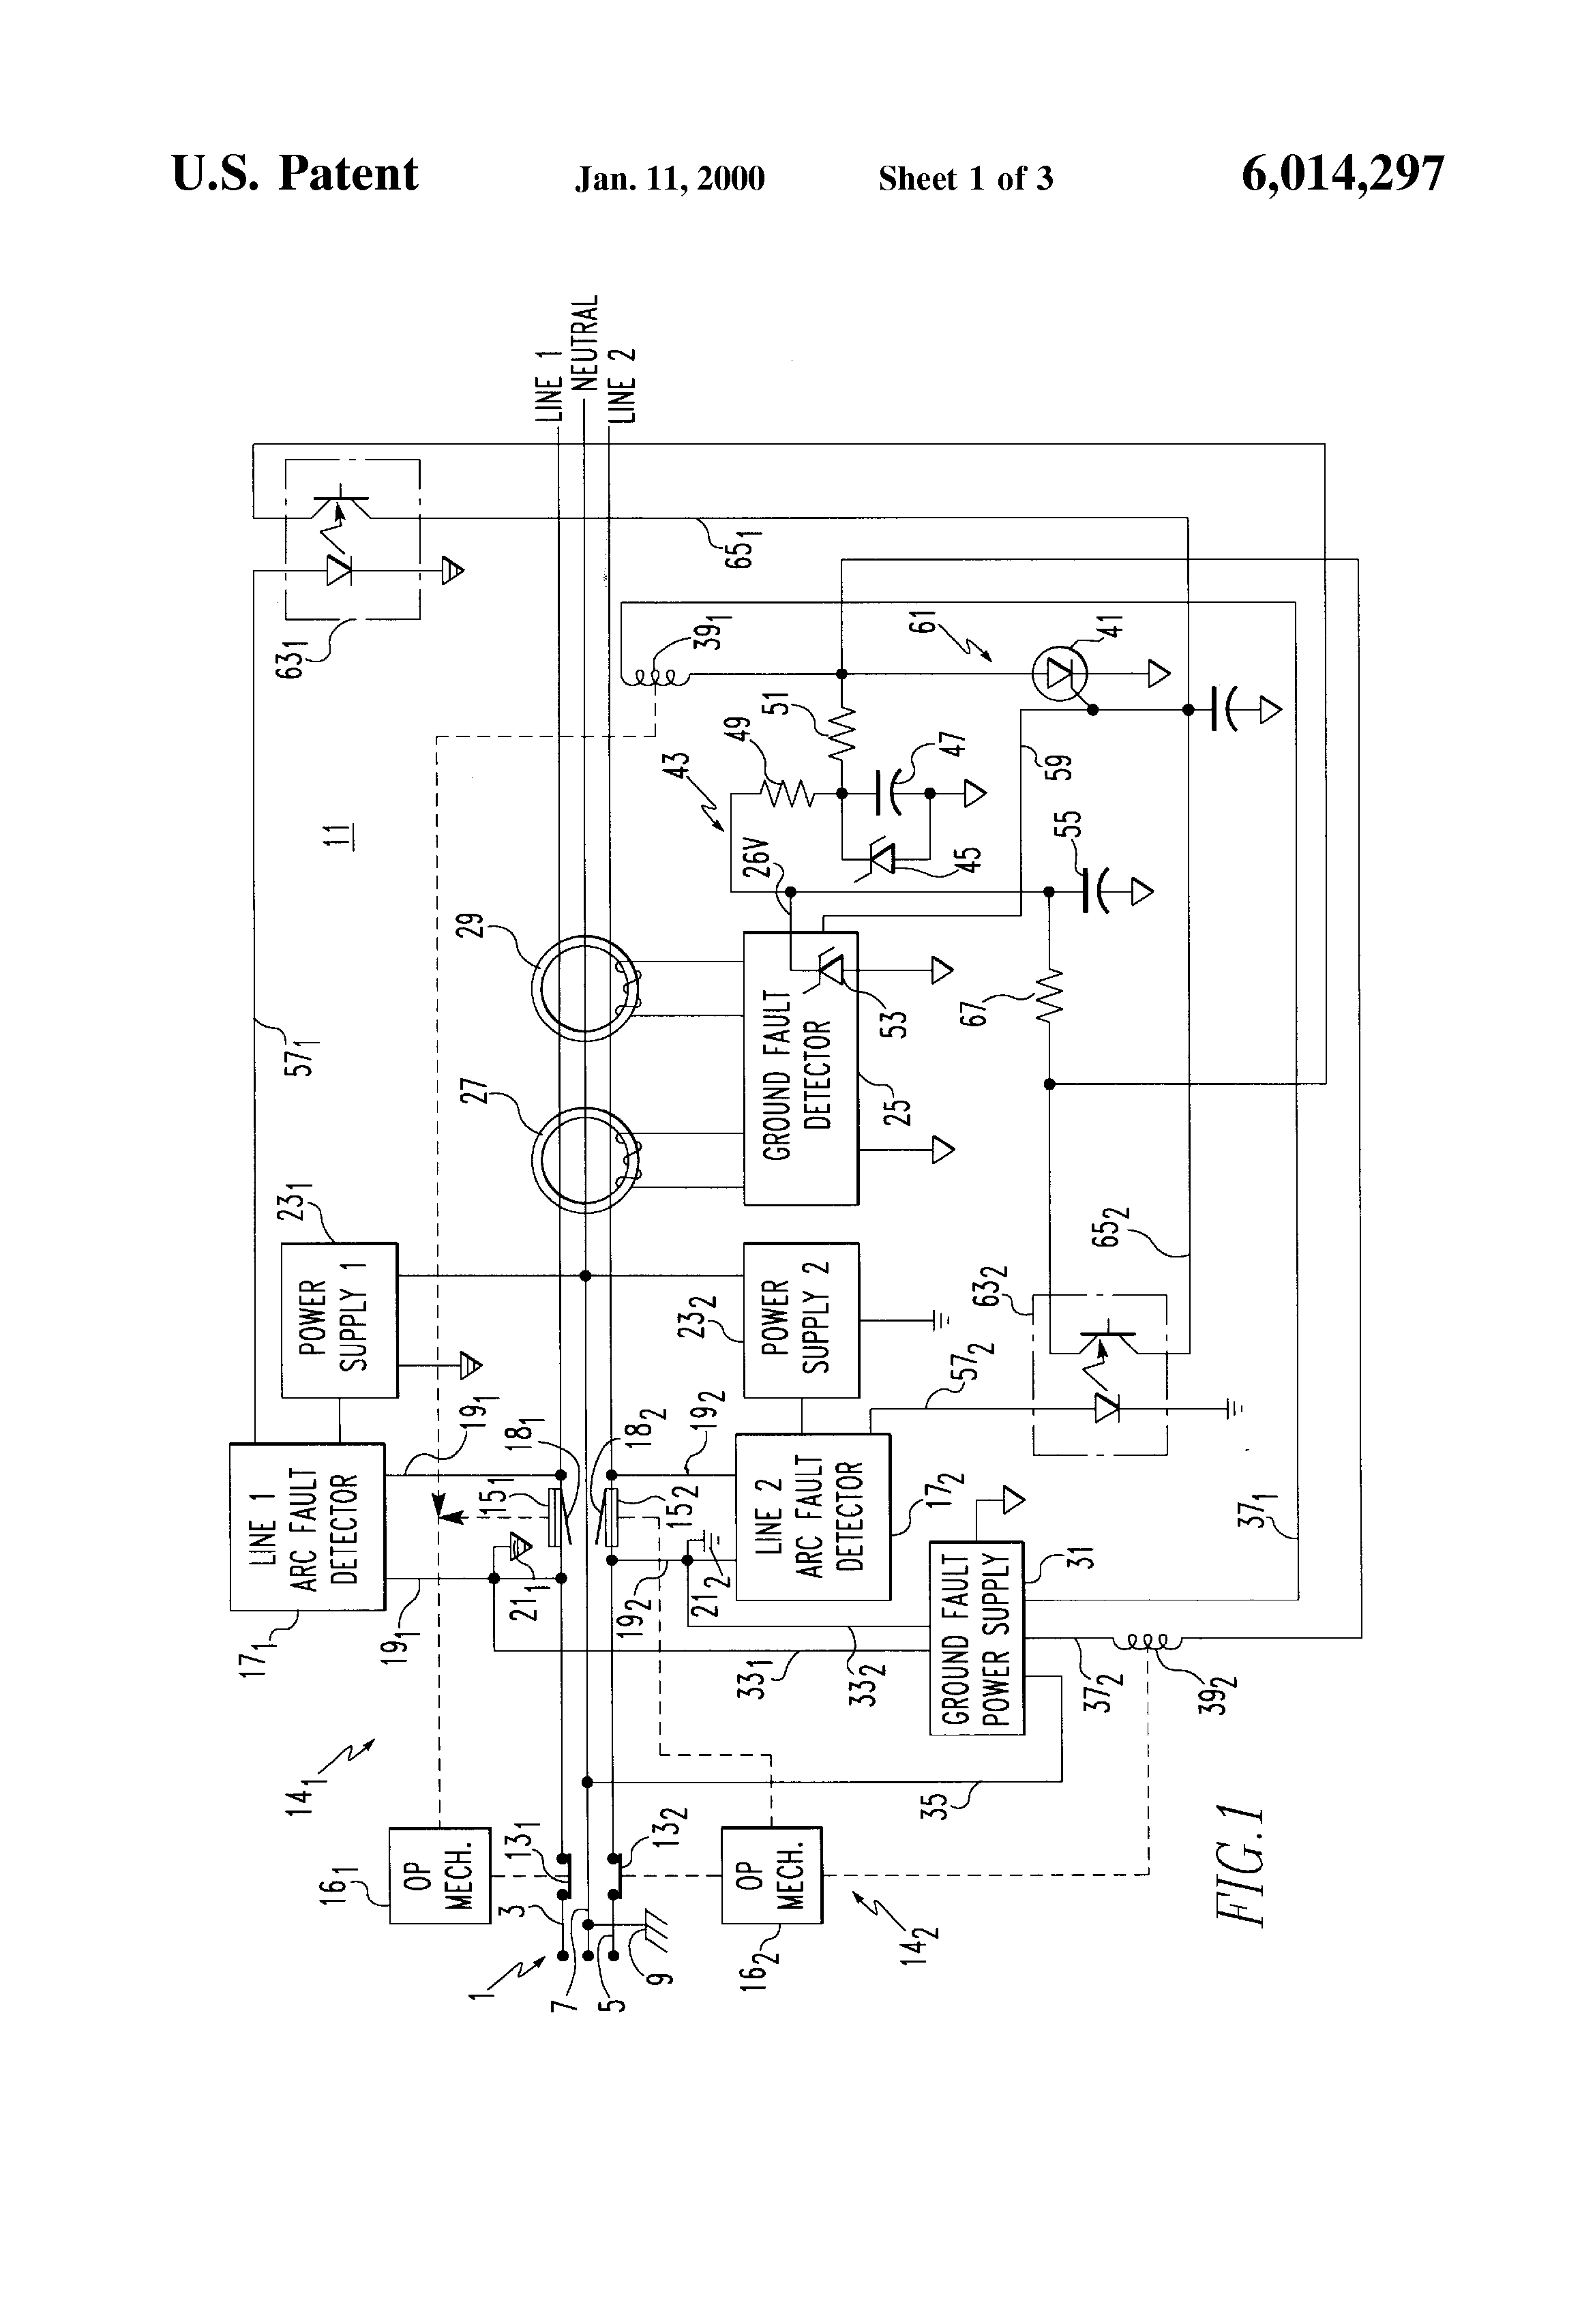 Multi Wire Branch Circuit Common Neutral House Wiring Diagram Patent Us6014297 Apparatus For Detecting Arcing Faults And Ground In Multiwire Single